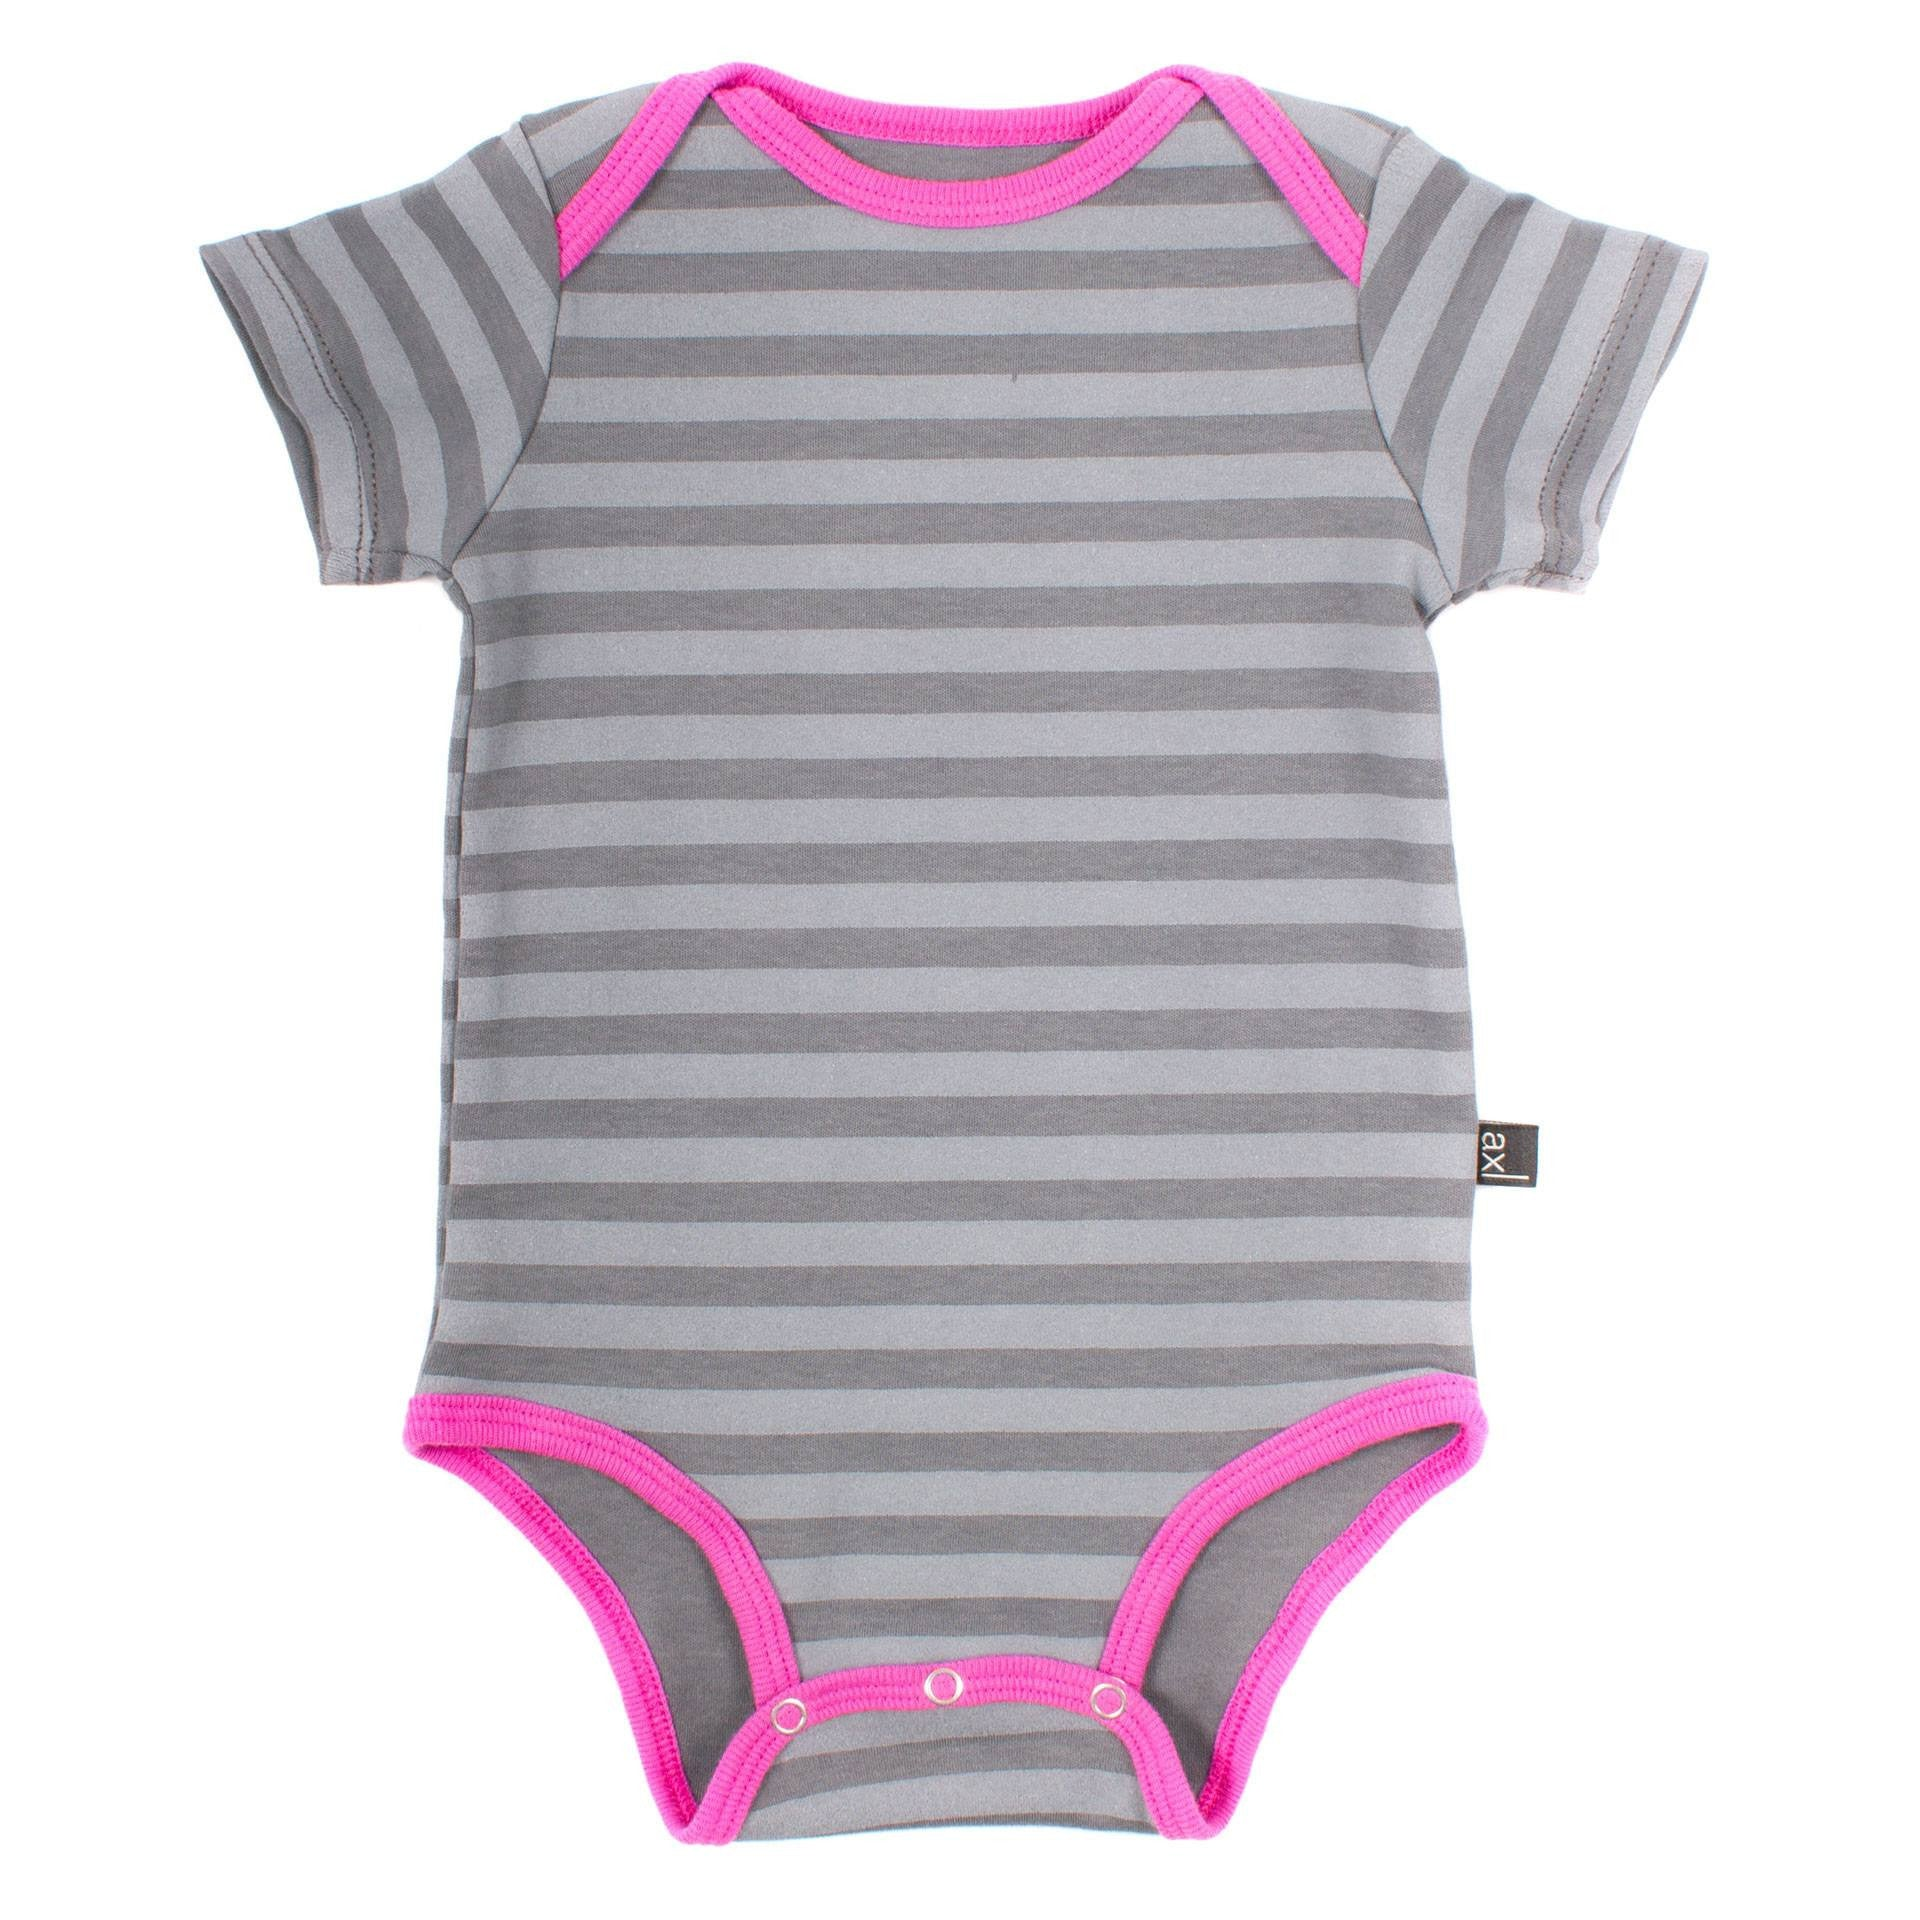 Organic Cotton Short Sleeve Bodysuit - Fog Stripe / Orchid